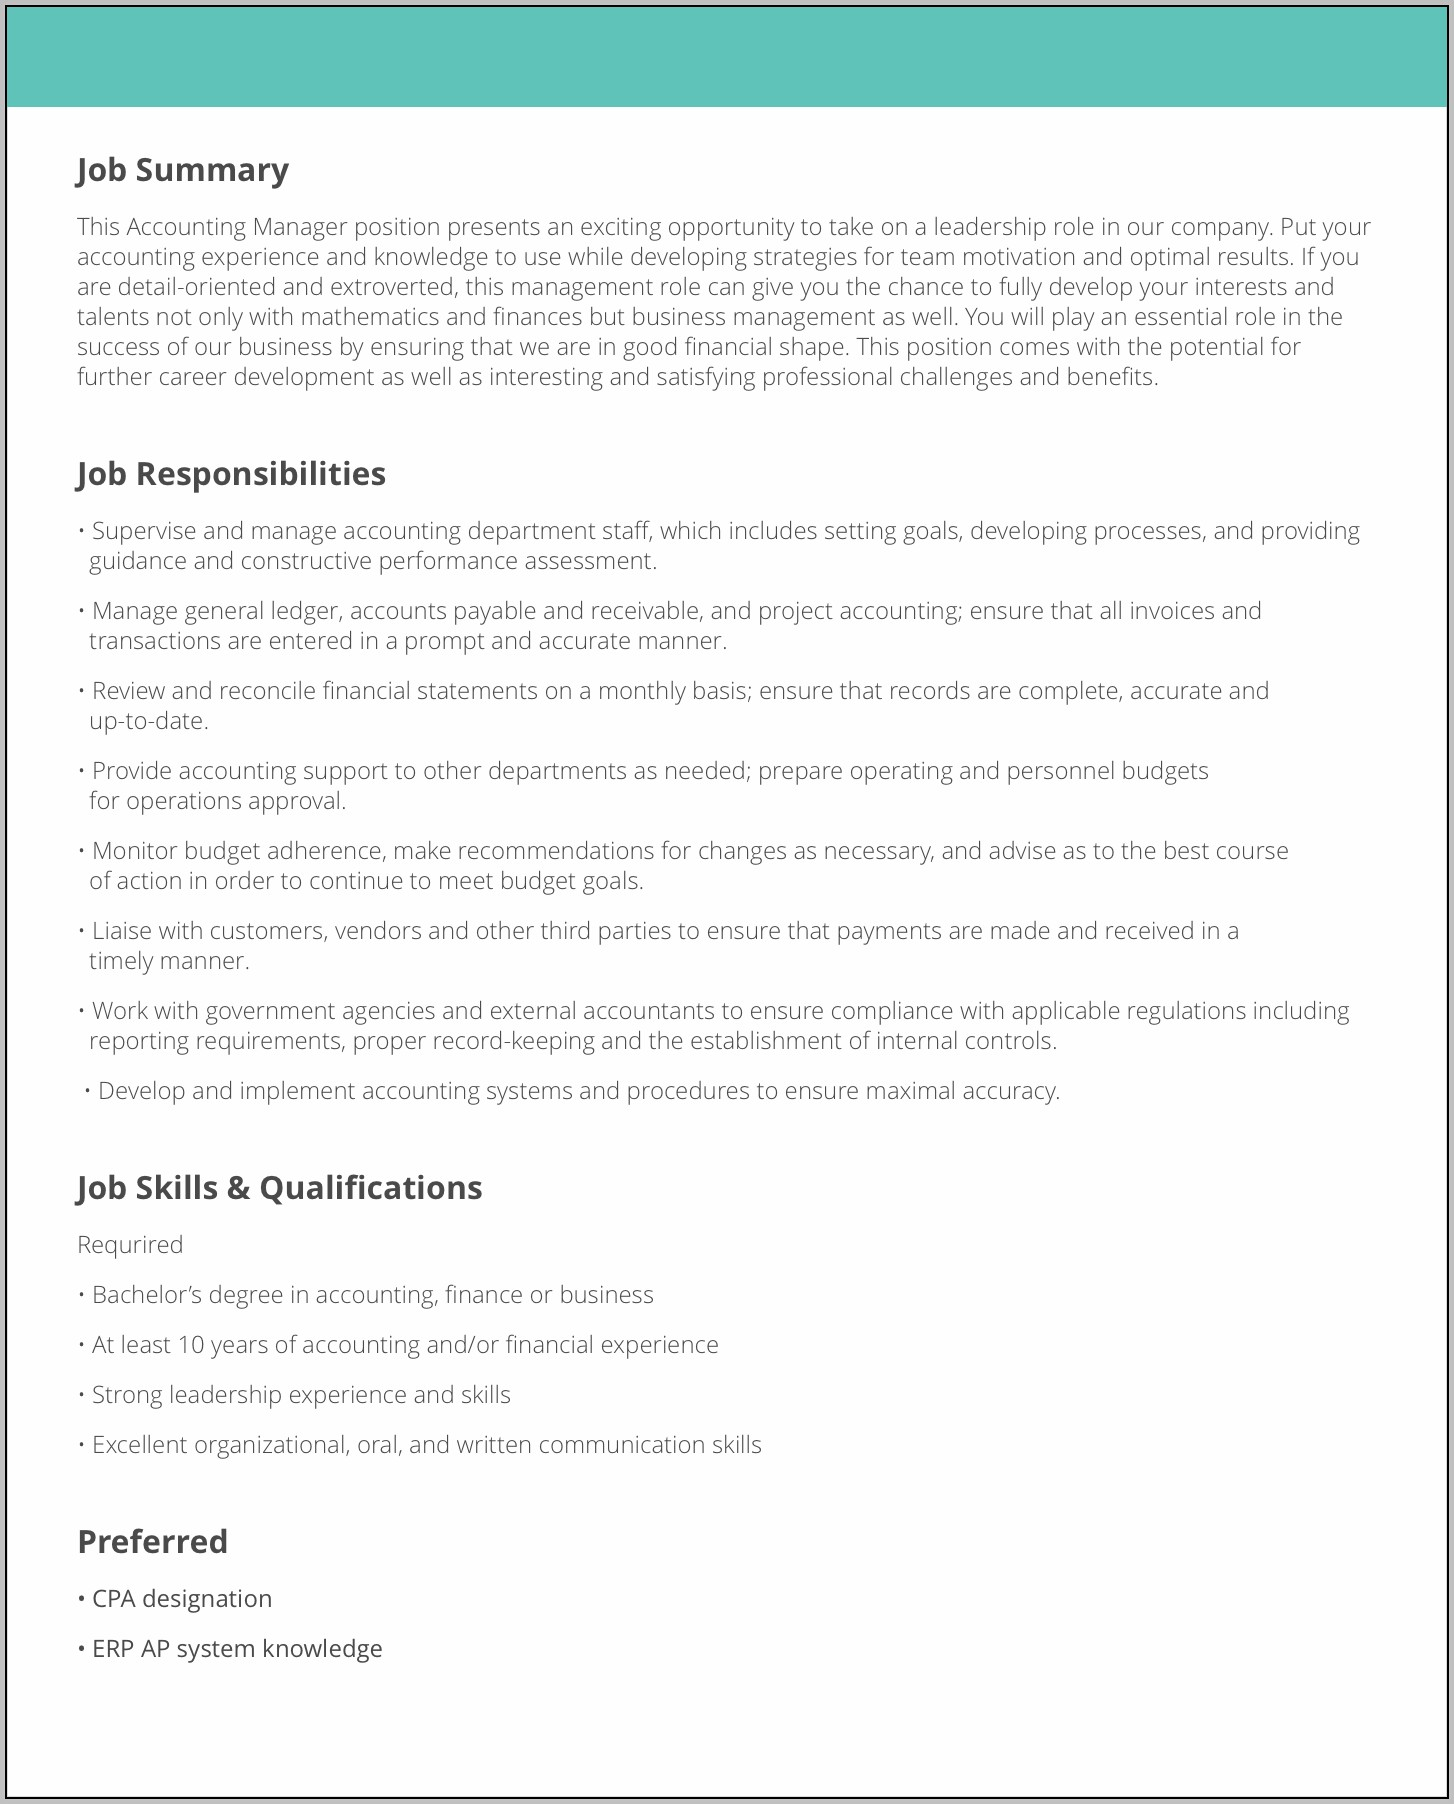 Example Of Job Description And Job Specification